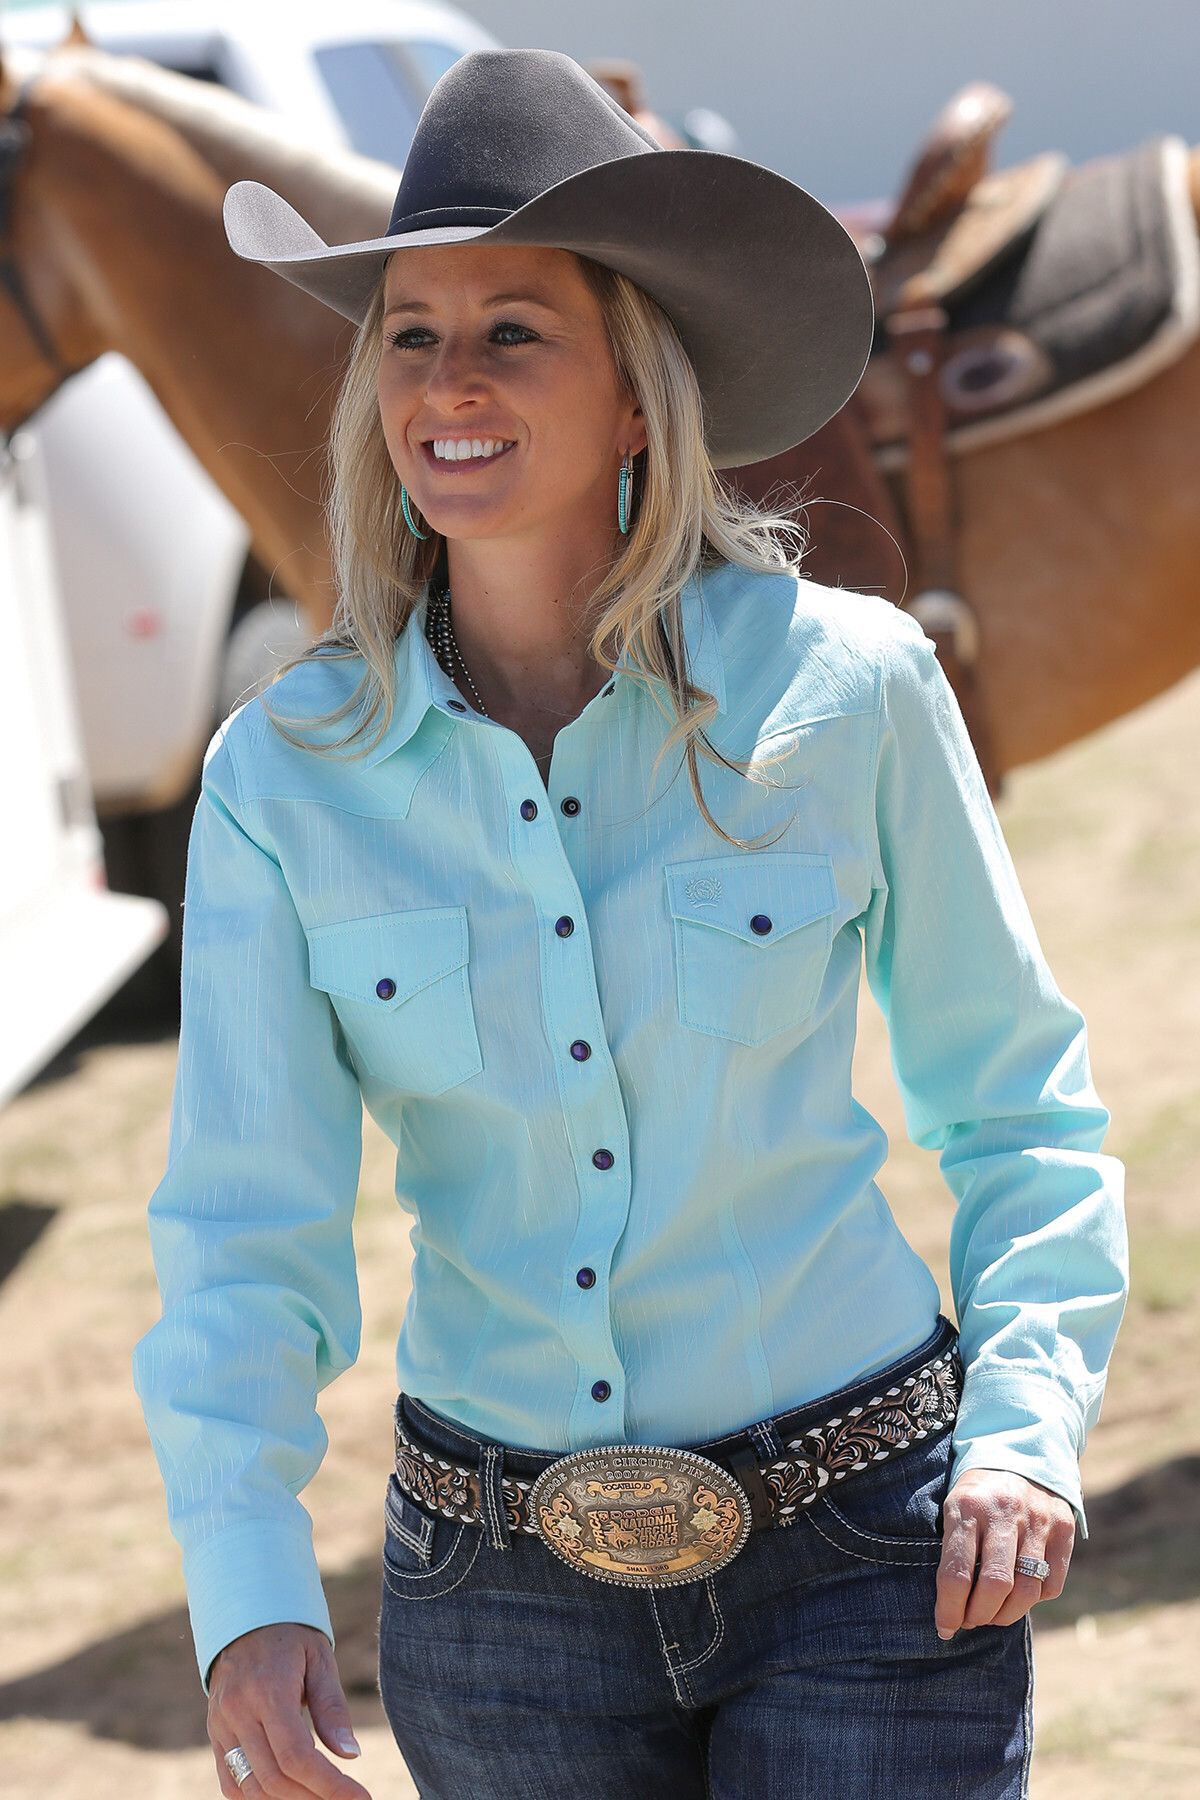 Pin by Guinevere Wilde on Rodeo in 2019 | Western shirts ...